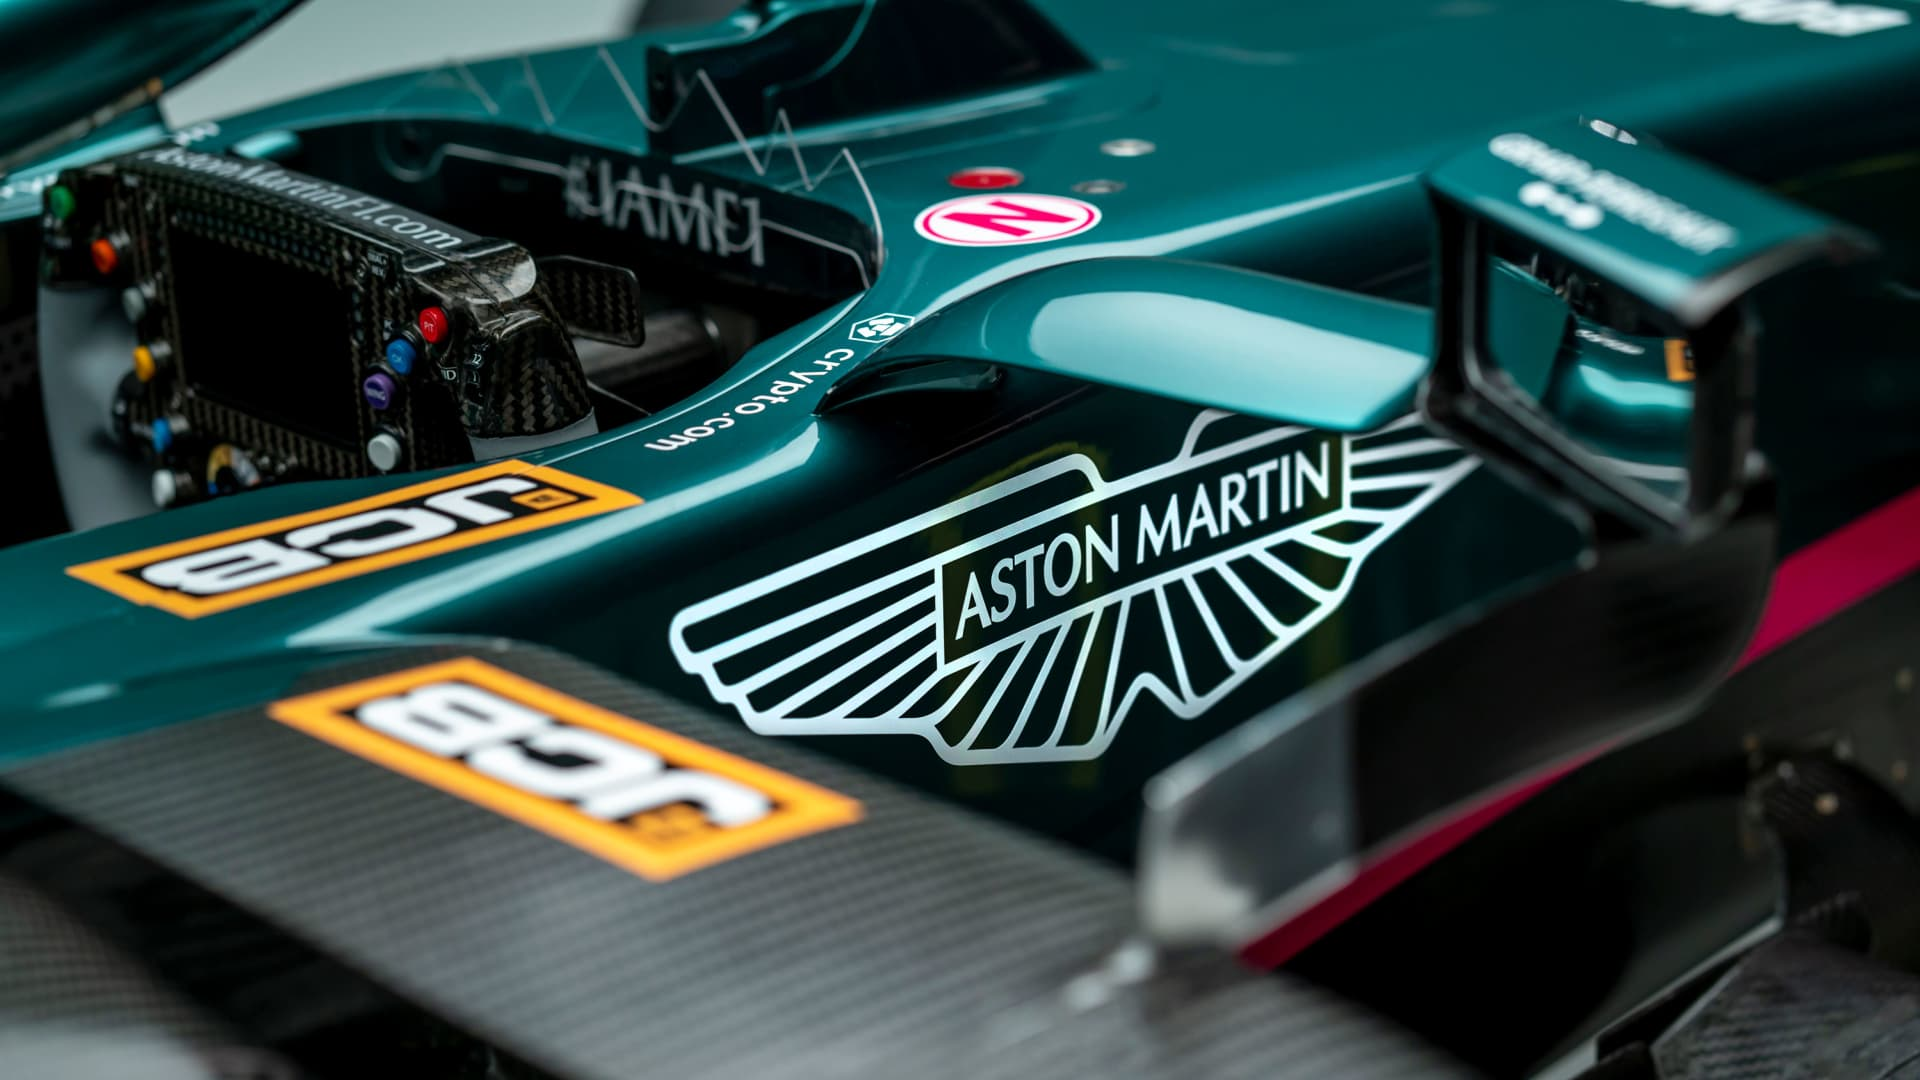 Aston Martin 2021 F1 challenger – the AMR21.